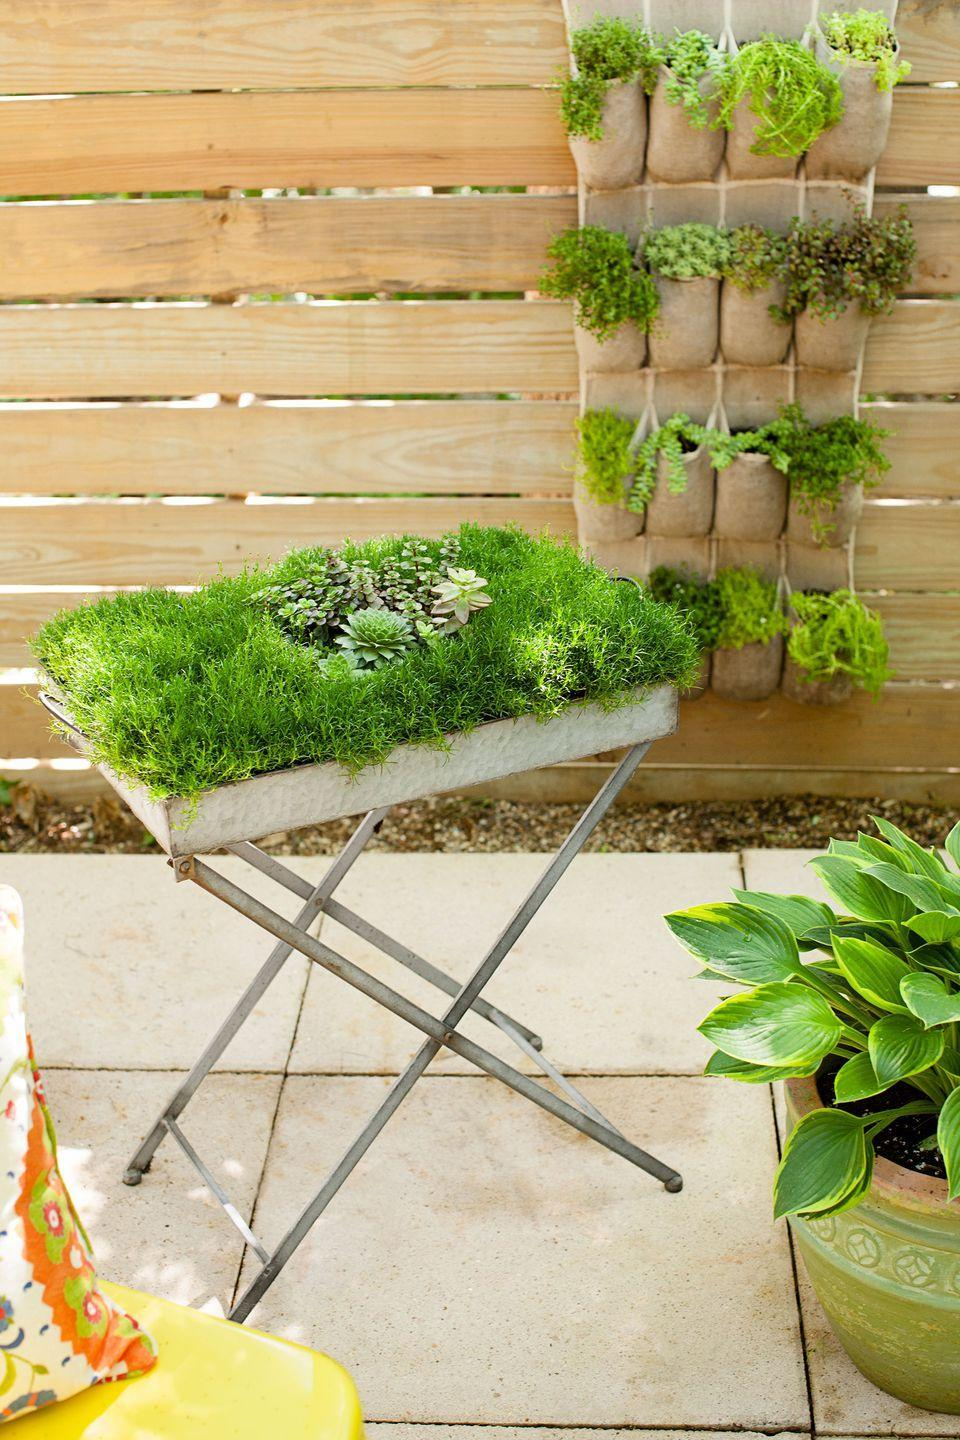 """<p> <a href=""""https://www.goodhousekeeping.com/home/gardening/advice/g1007/backyard-decorating/"""" rel=""""nofollow noopener"""" target=""""_blank"""" data-ylk=""""slk:This metal table"""" class=""""link rapid-noclick-resp"""">This metal table</a>, originally intended for serving drinks, now overflows with Irish moss and succulents on a patio.</p>"""